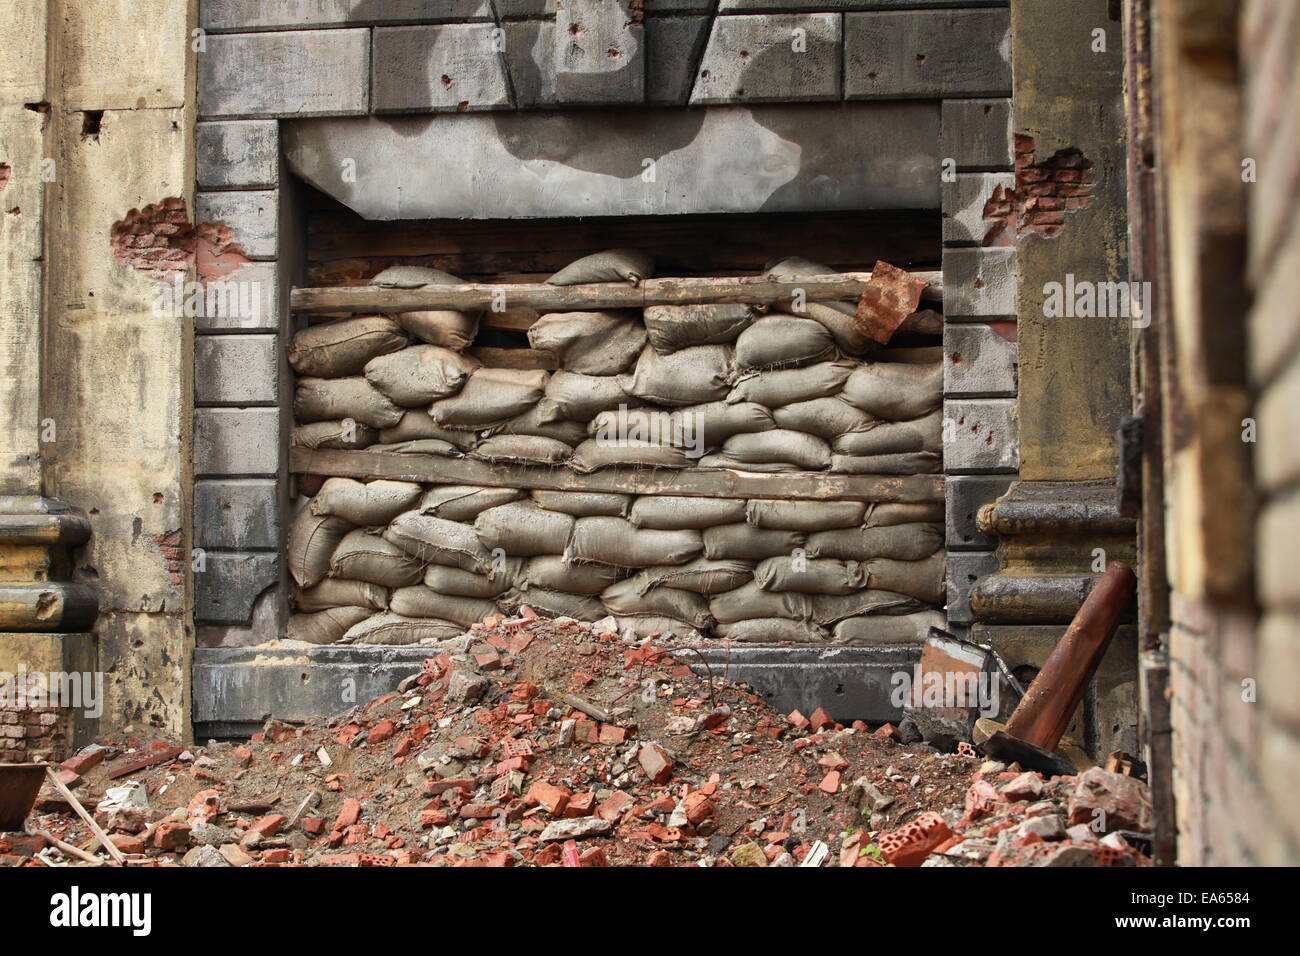 barricade of bags - Stock Image